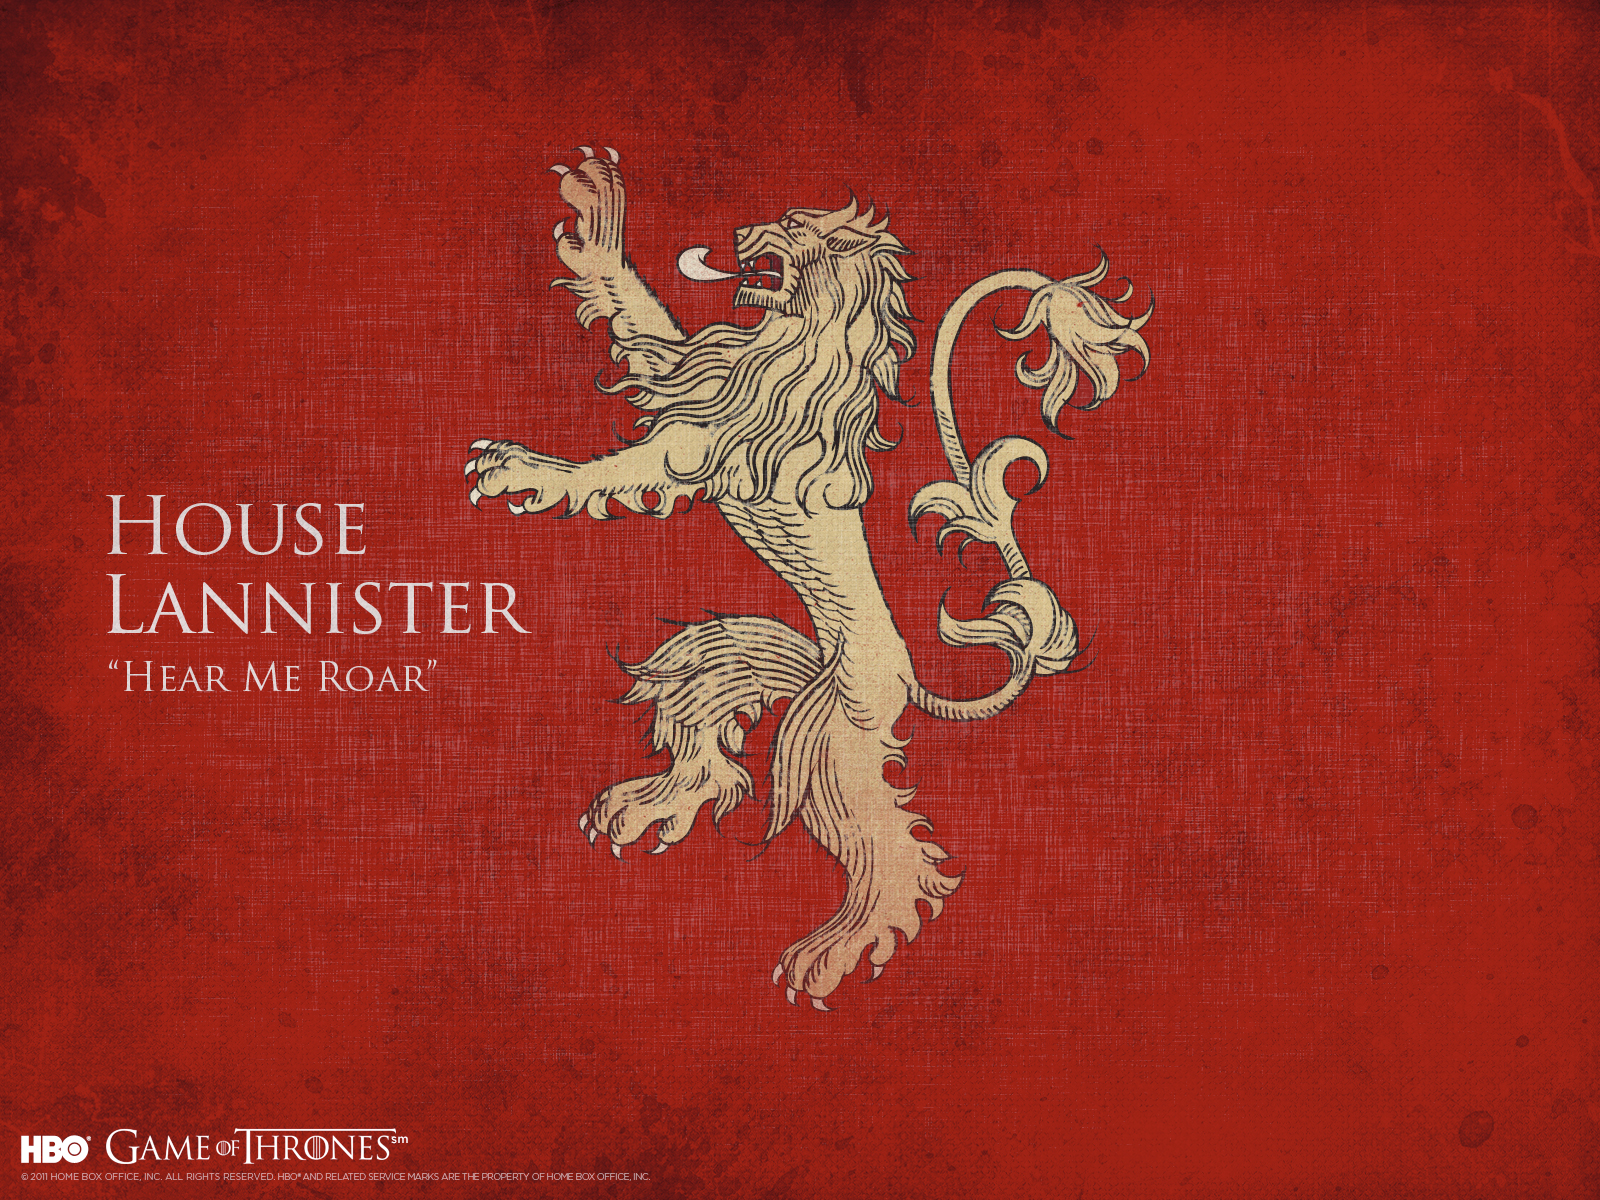 Game of thrones the symbolism of seasons sigils and dire wolves the sigil of the lannister family is a lion the queen was by birth a lannister and only upon marrying the king robert became a baratheon buycottarizona